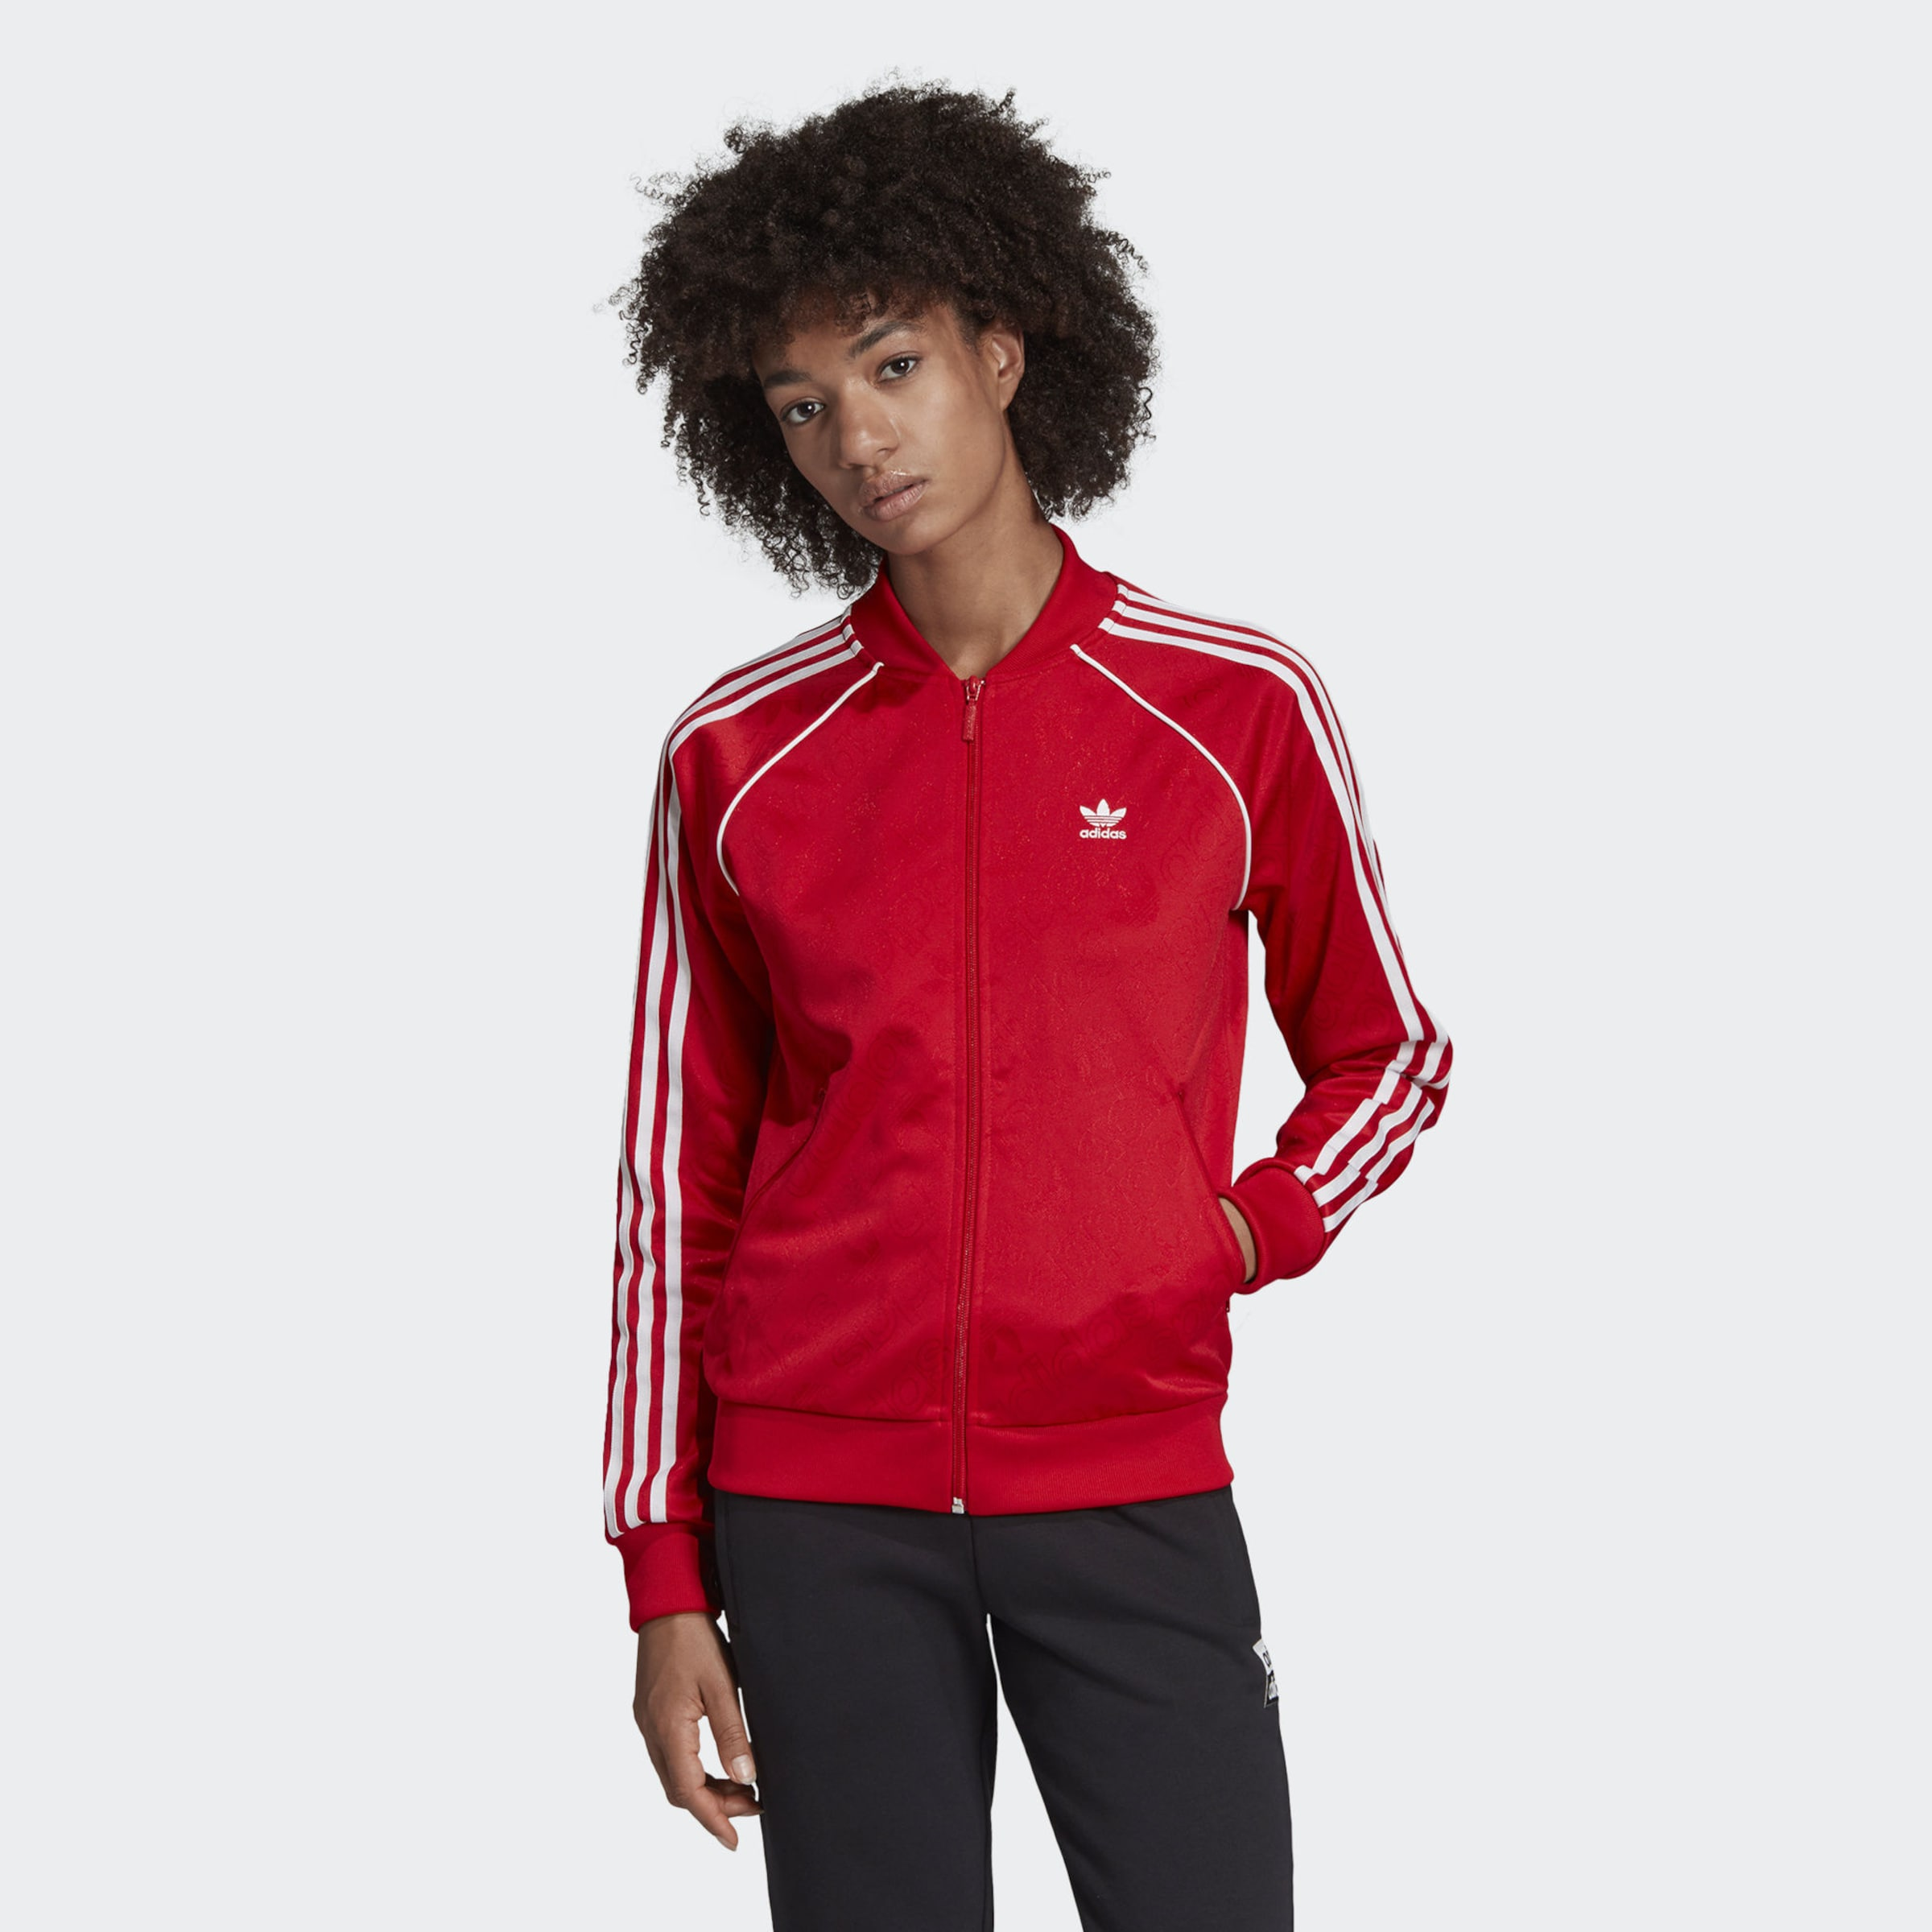 In Track' Originals Adidas RotWei Top 'sst OPXwiZlkuT